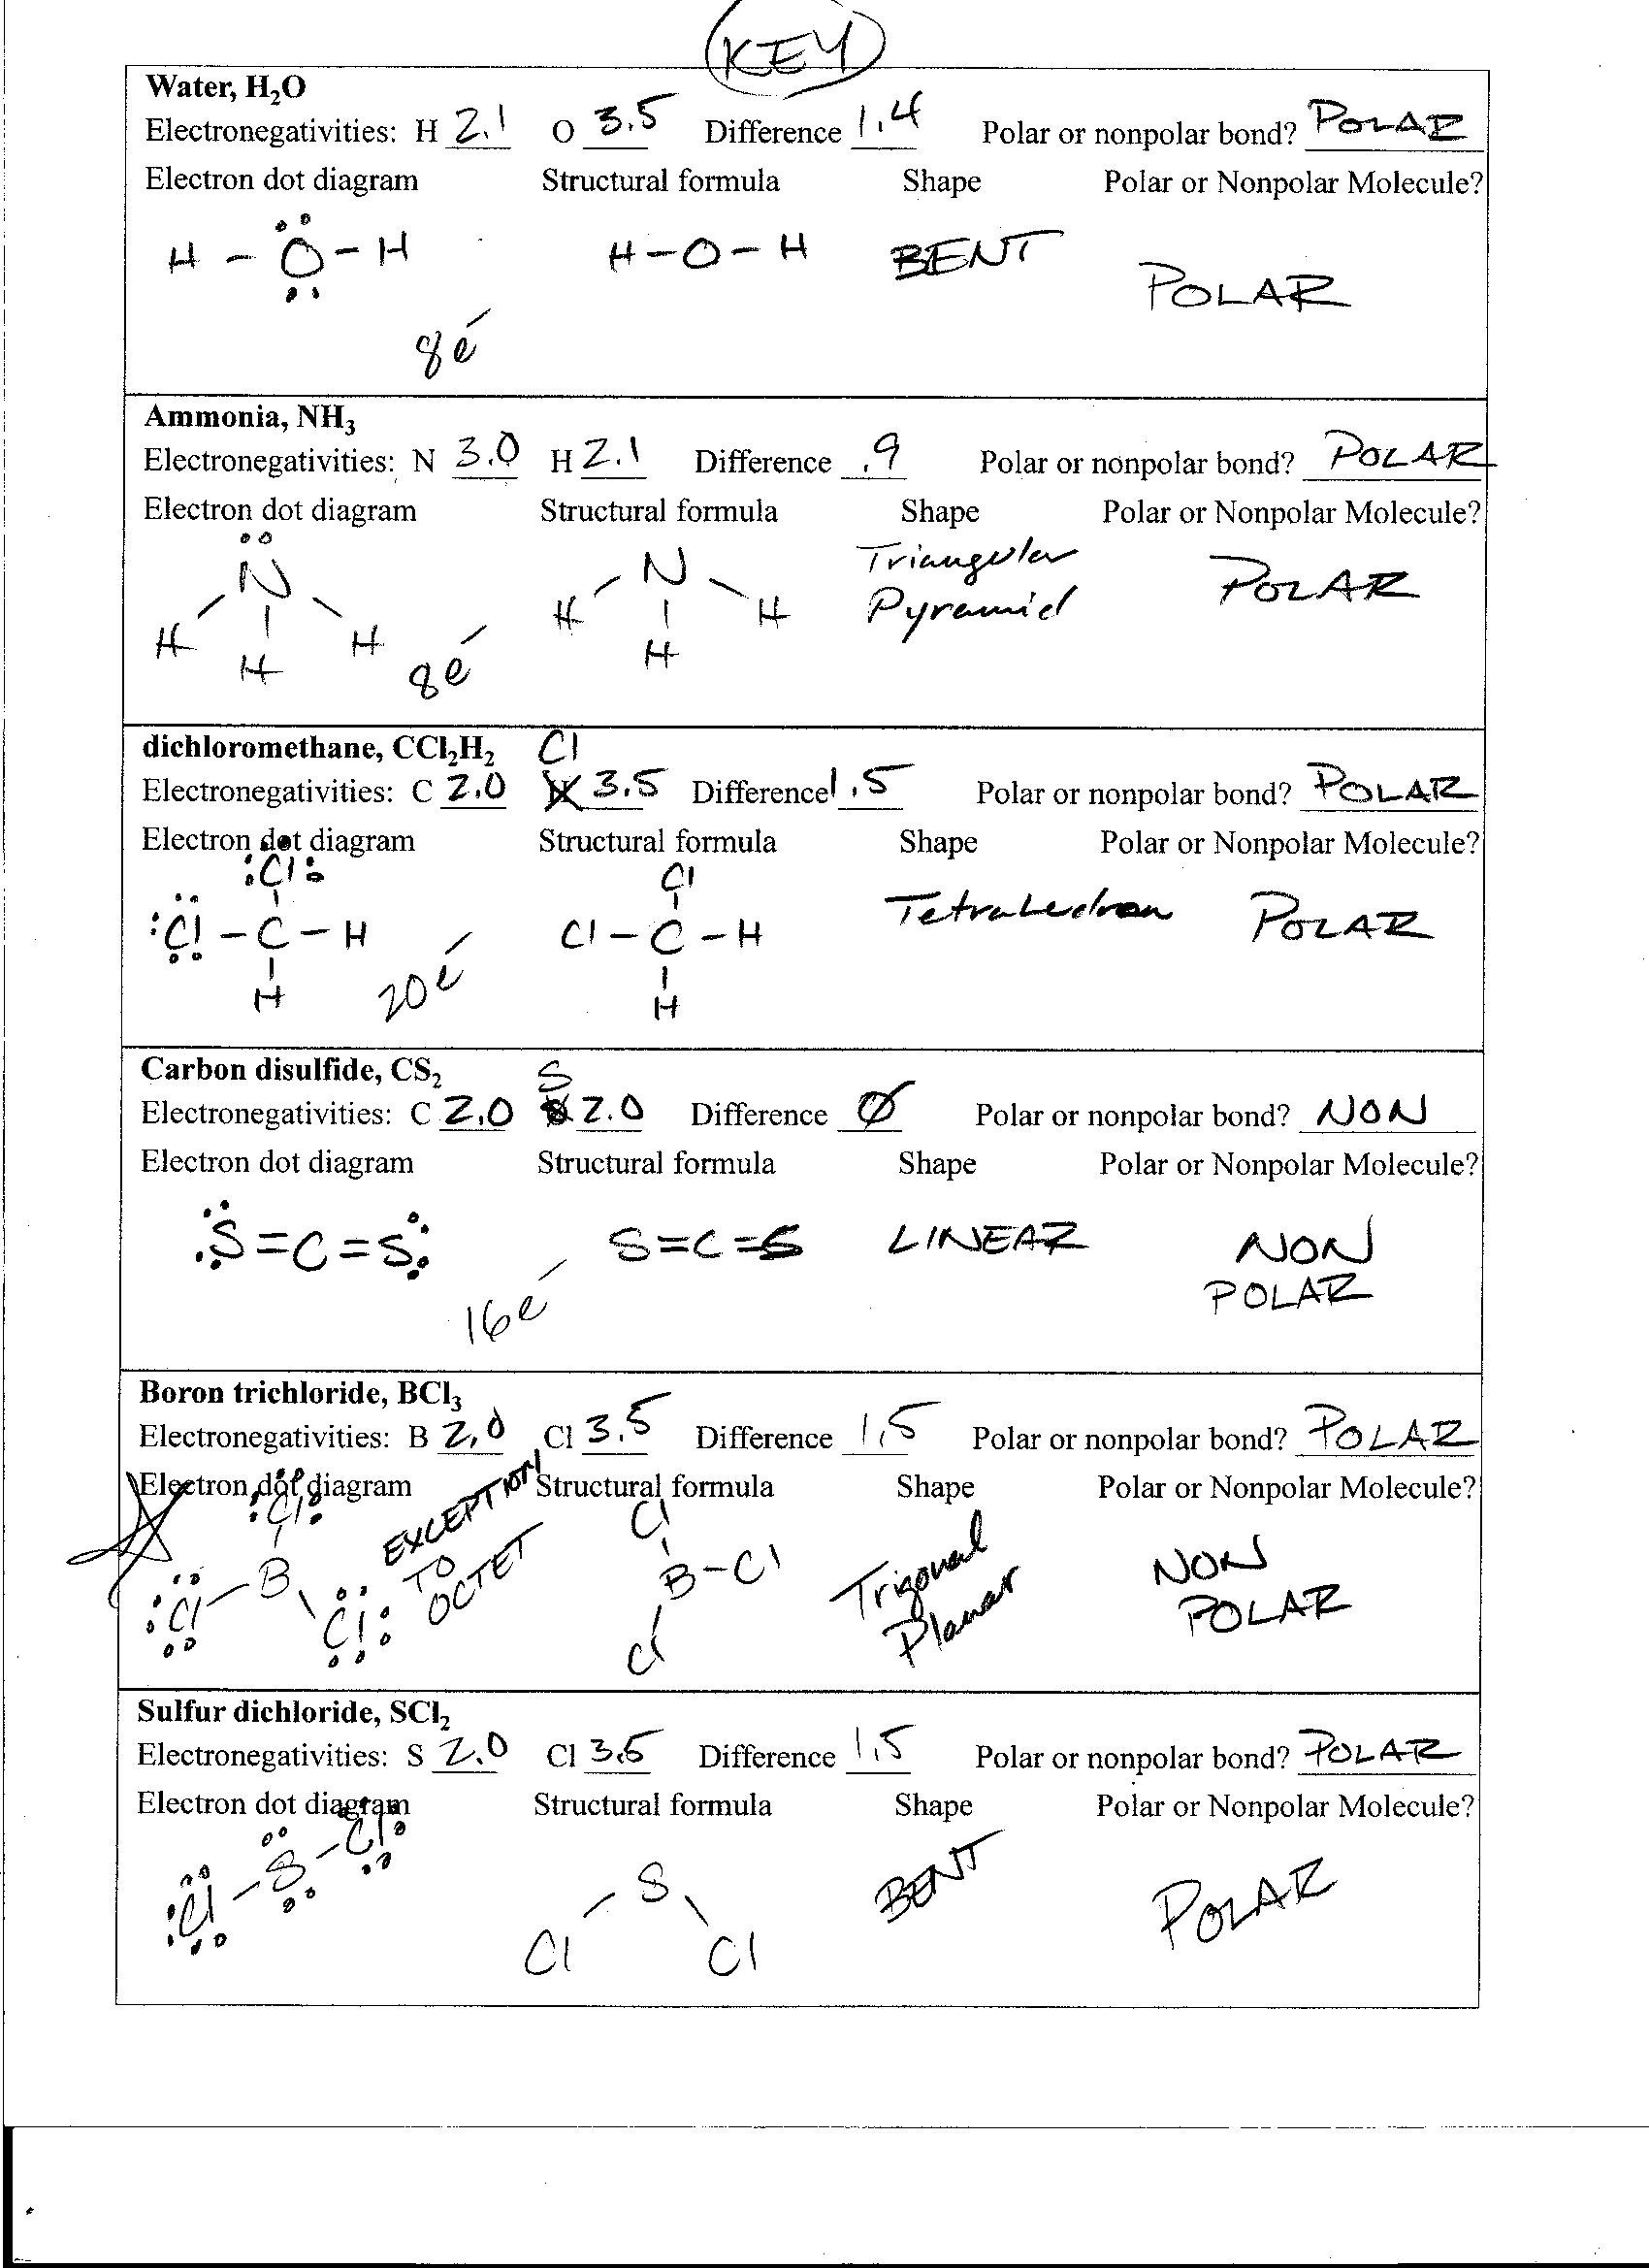 Worksheets Ph & Poh Russian Answer Work Sheet foothill high school polar and non molecules page 2 key jpg